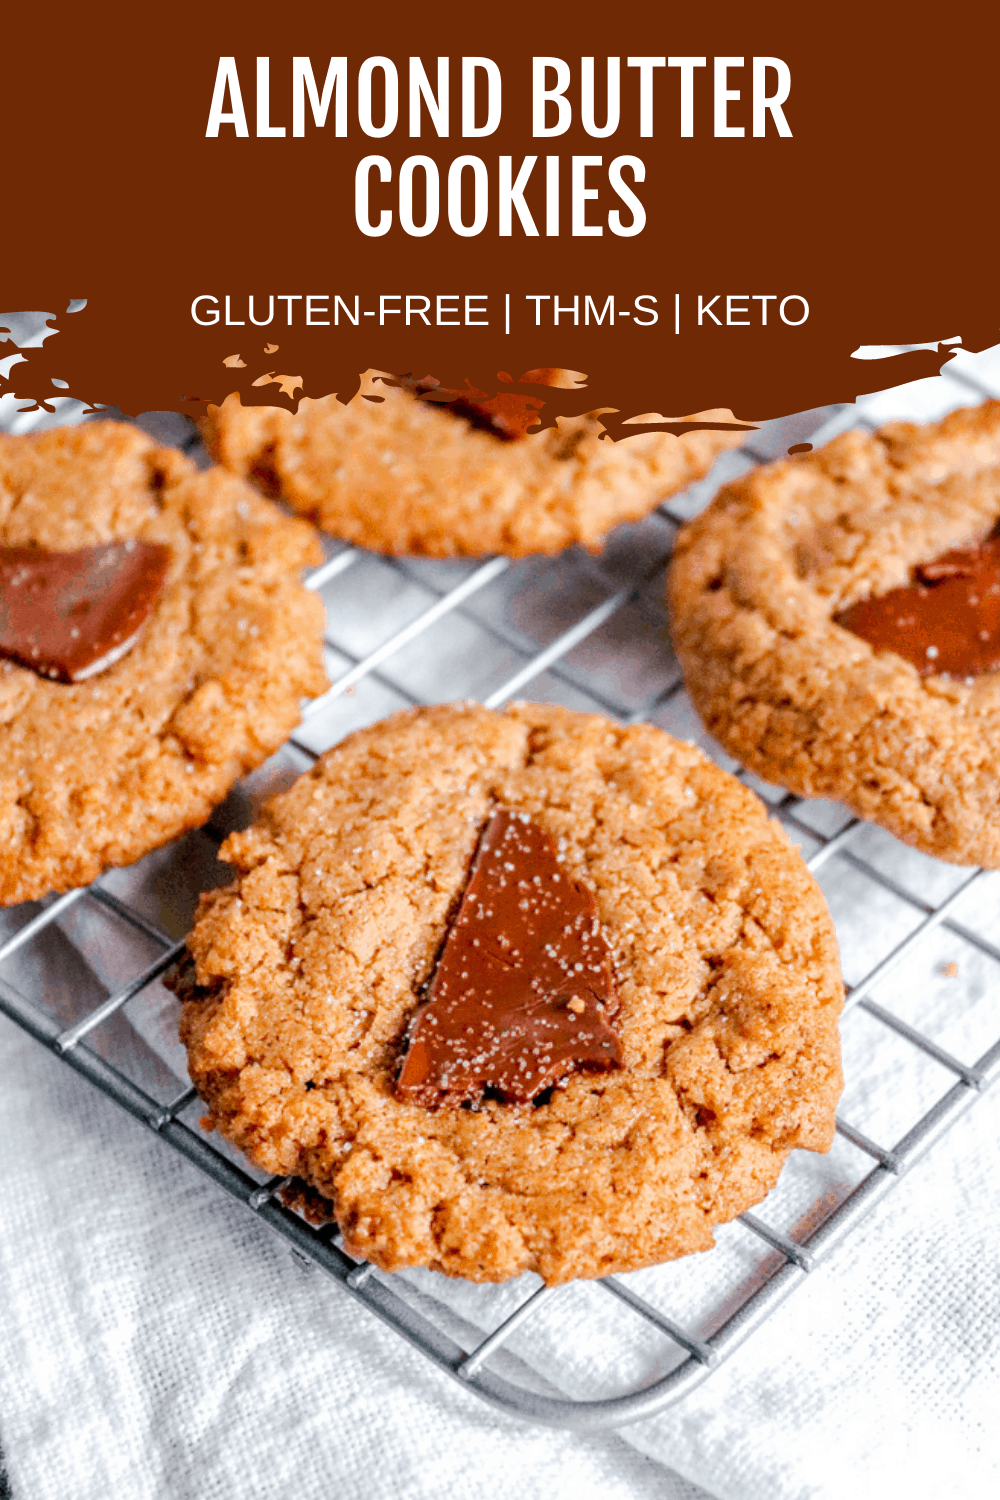 Keto Almond Butter Chocolate Cookies are a flourless cookie that are keto approved and gluten free. 5 ingredients is all it takes to whip up these simple keto chocolate cookies.